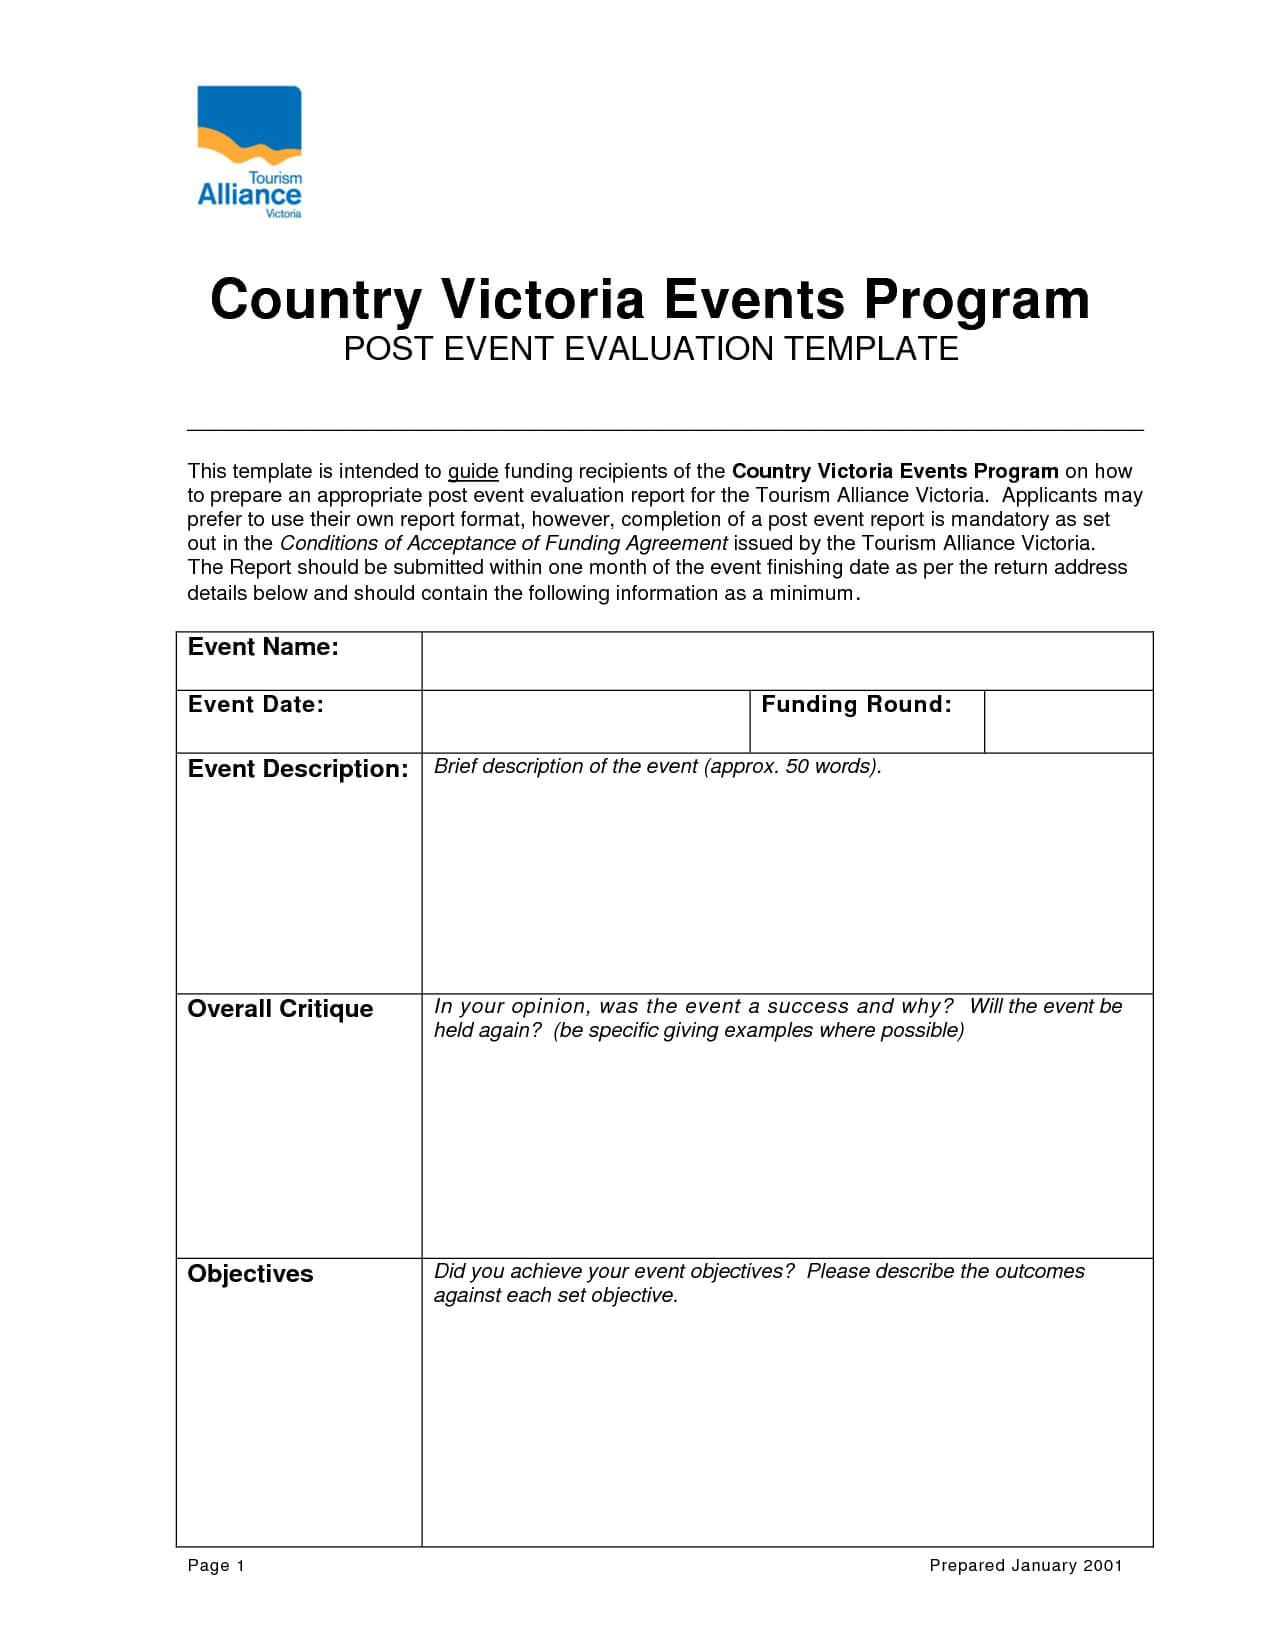 Post Event Evaluation Report Template Inside Post Event Evaluation Report Template